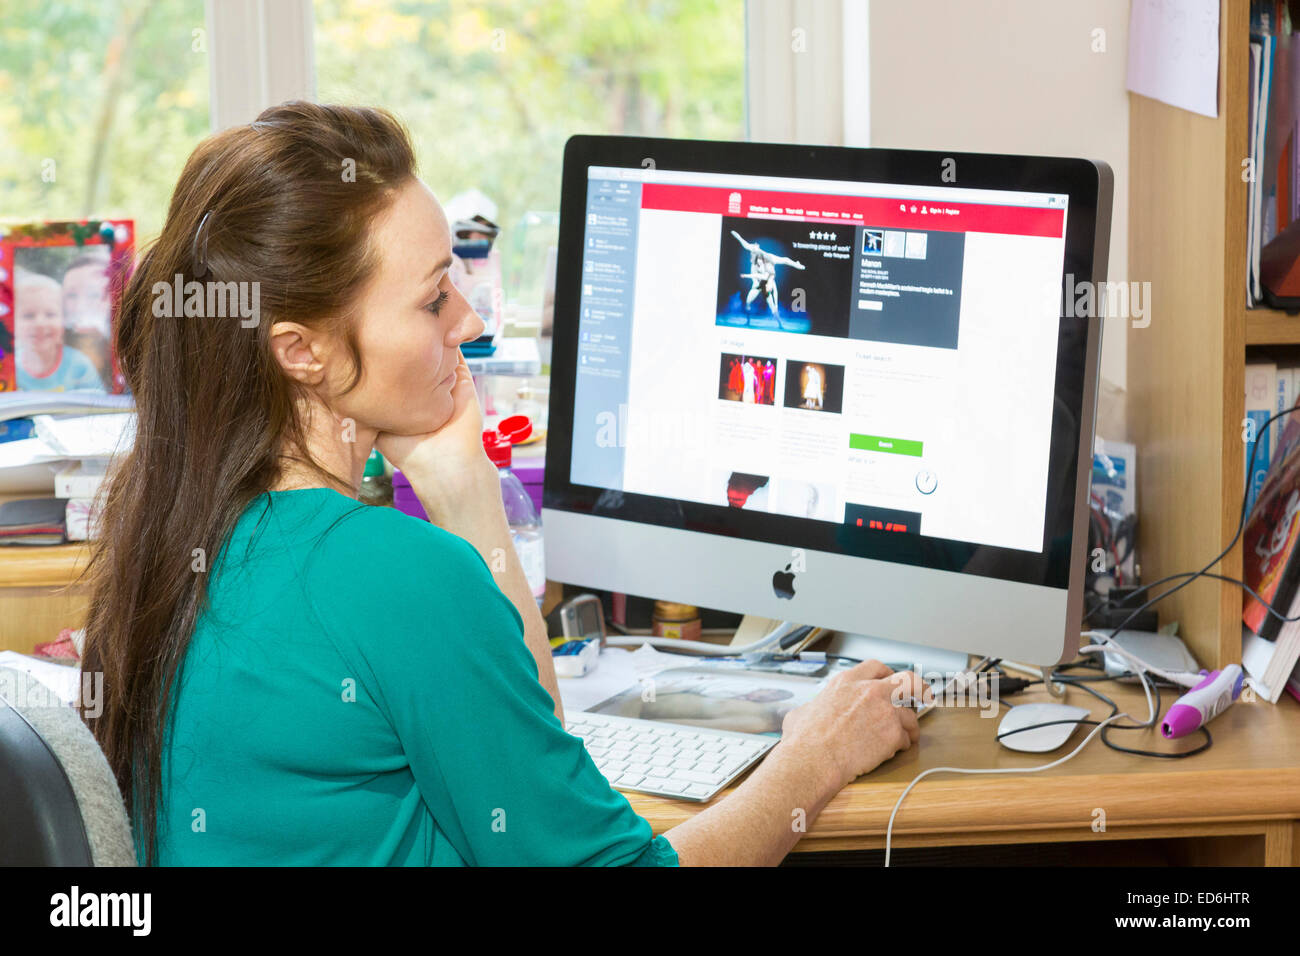 woman working in her home office - Stock Image